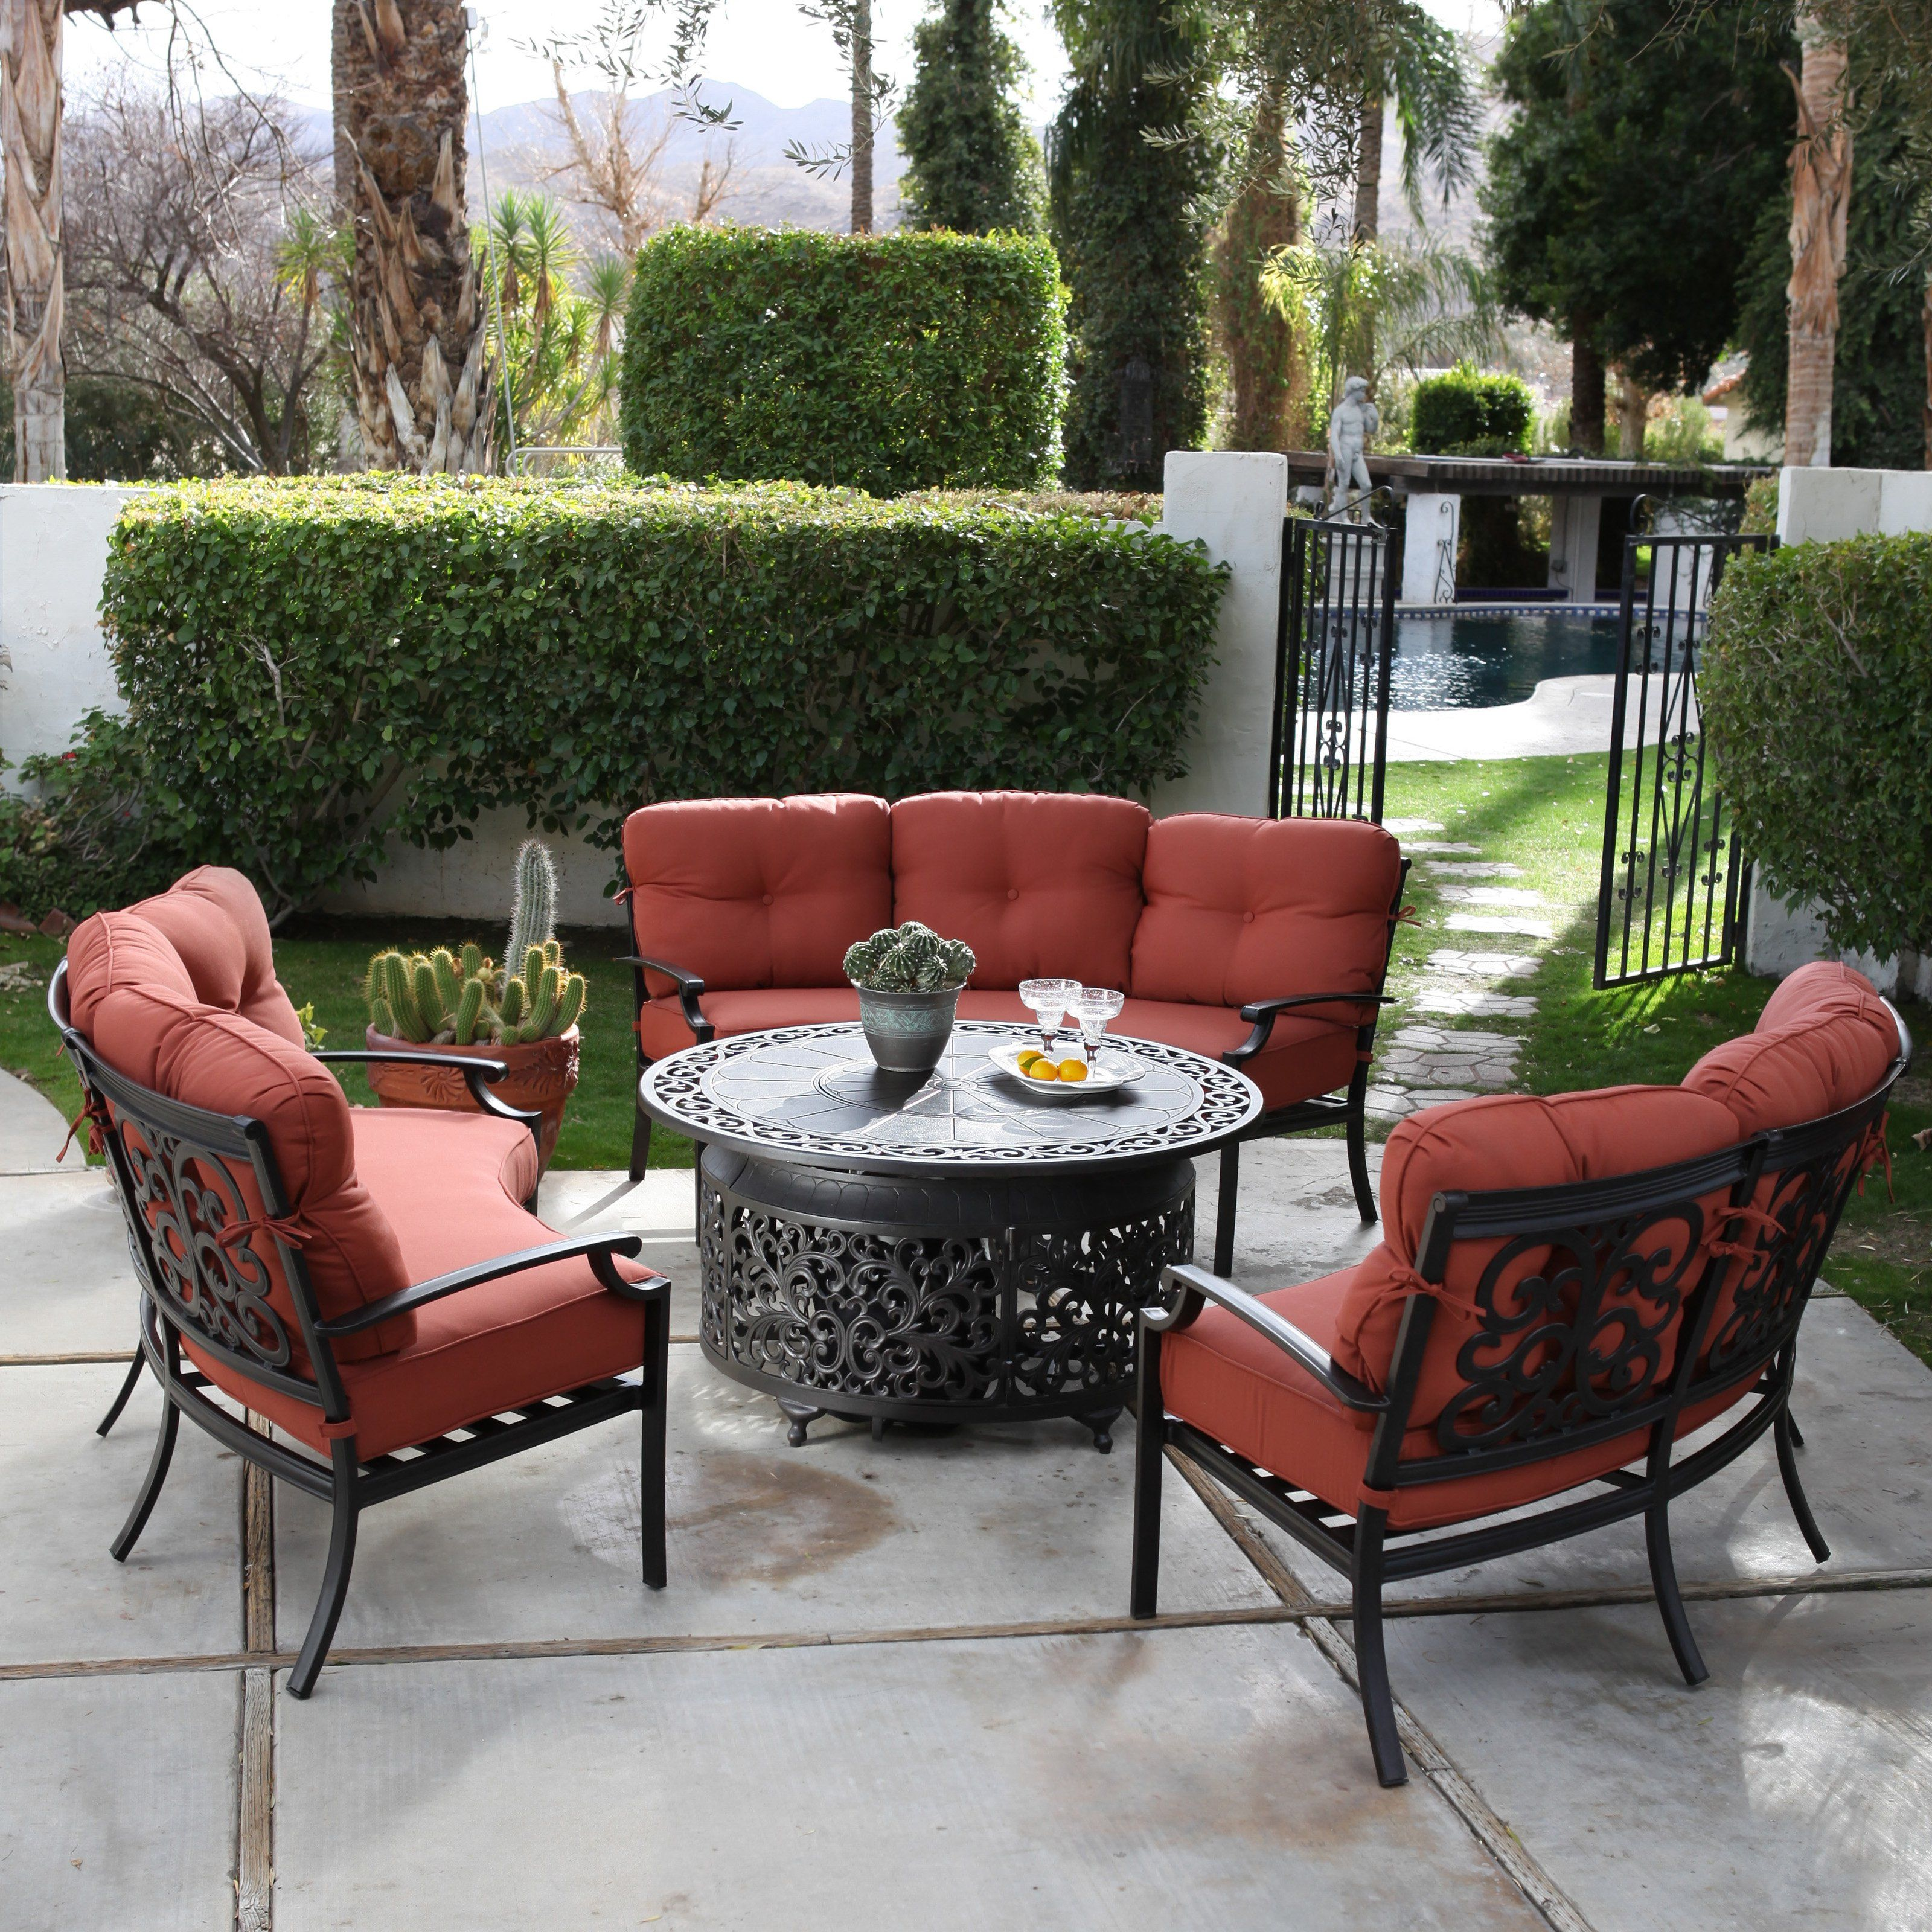 belham living parkville metal sofa sectional patio dining set reversible chaise outdoor with fire pit baci room